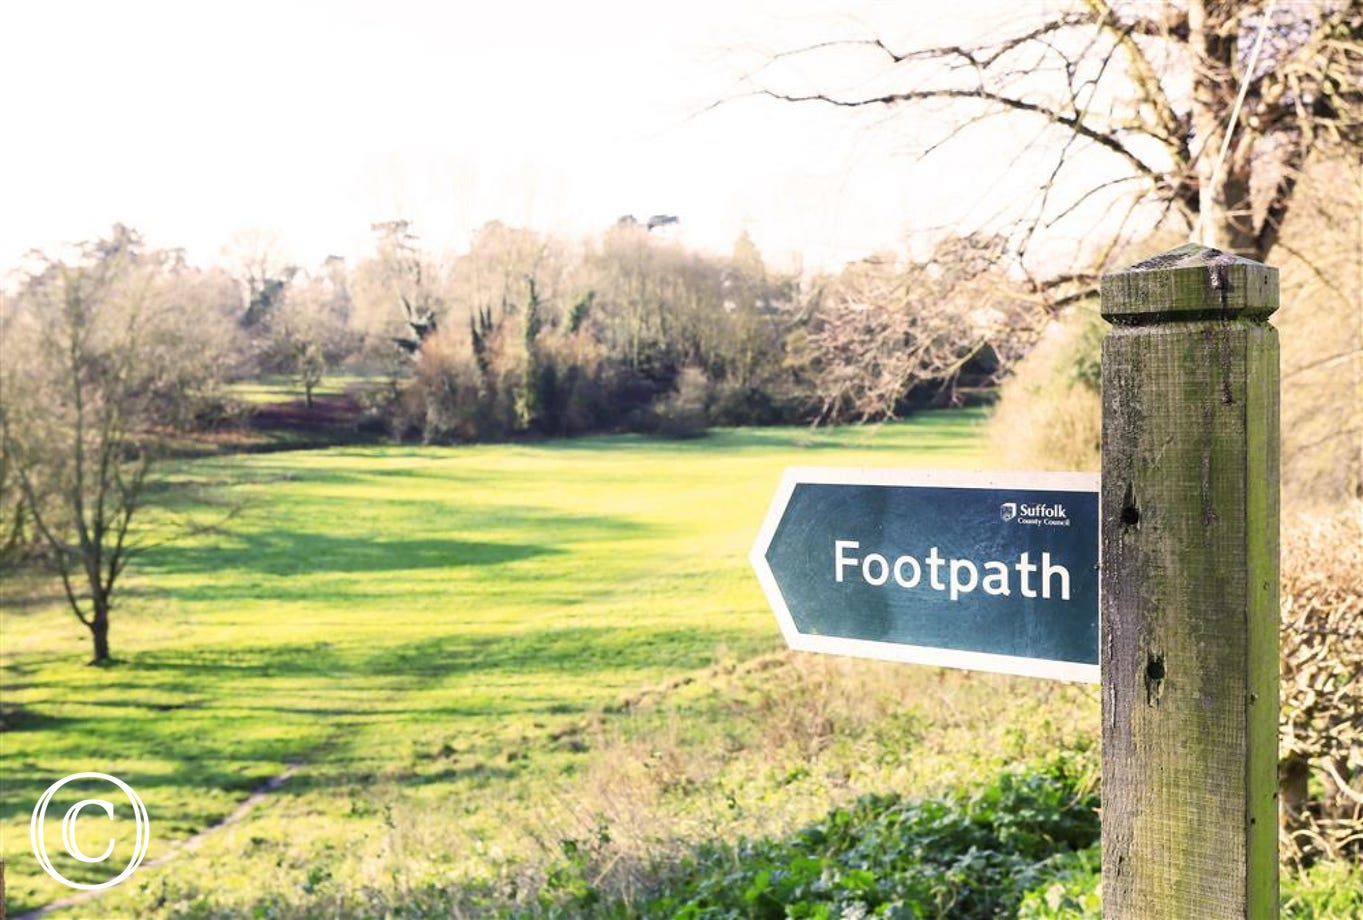 You can access the park across the road from Wren Cottage via a footpath.